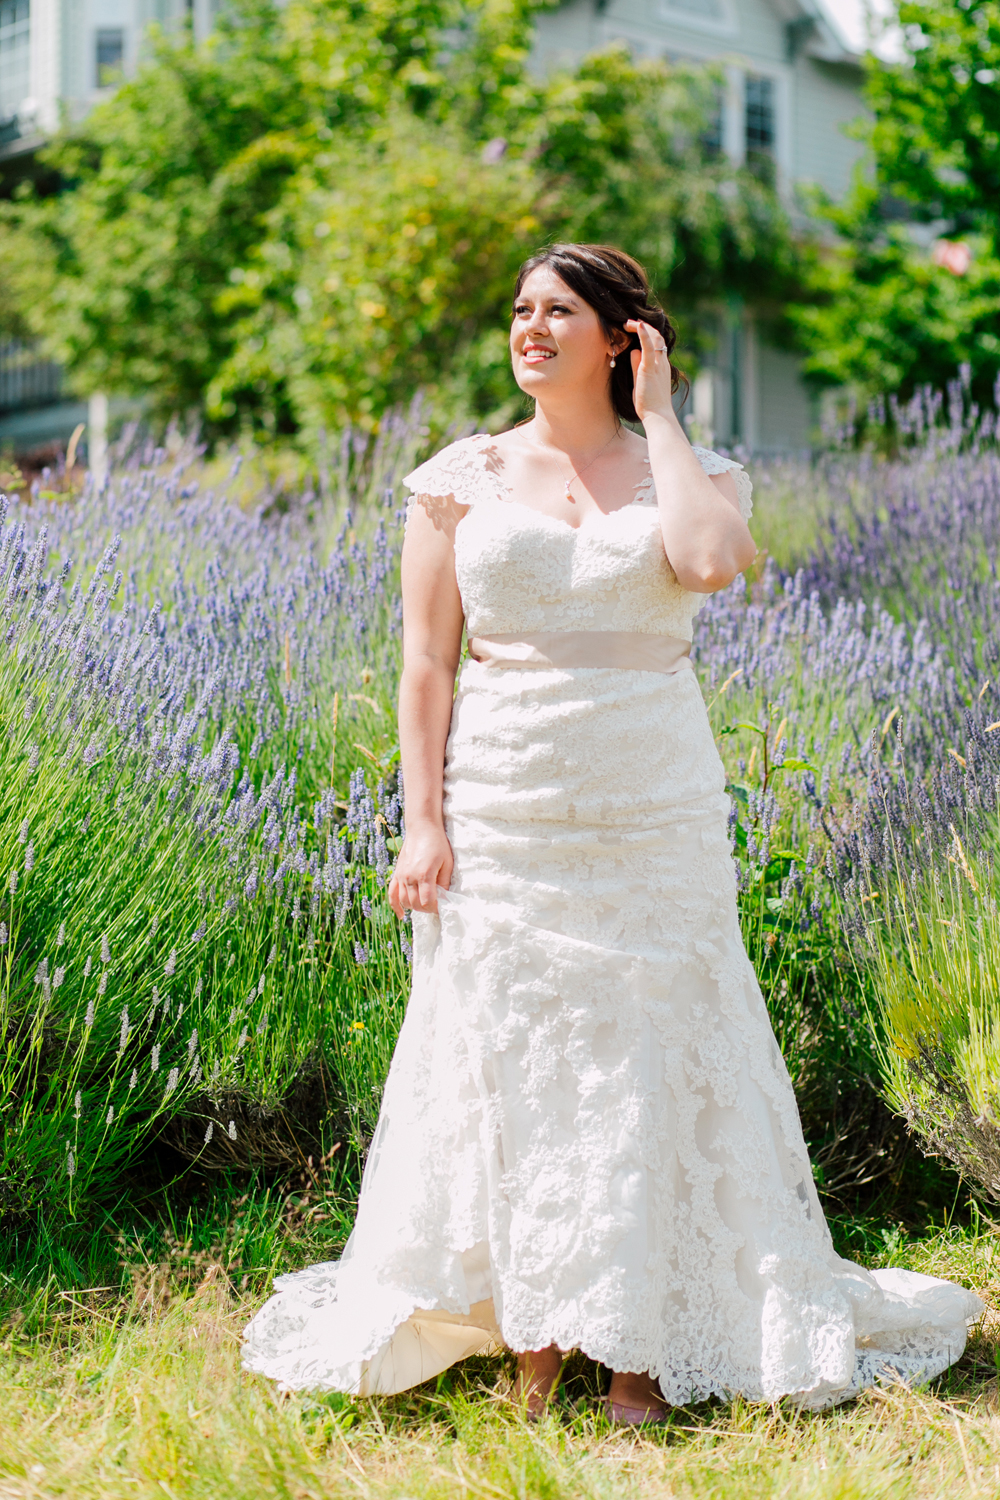 003-bellingham-bridal-photographer-katheryn-moran-back-in-thyme-lavender-2018-belle.jpg